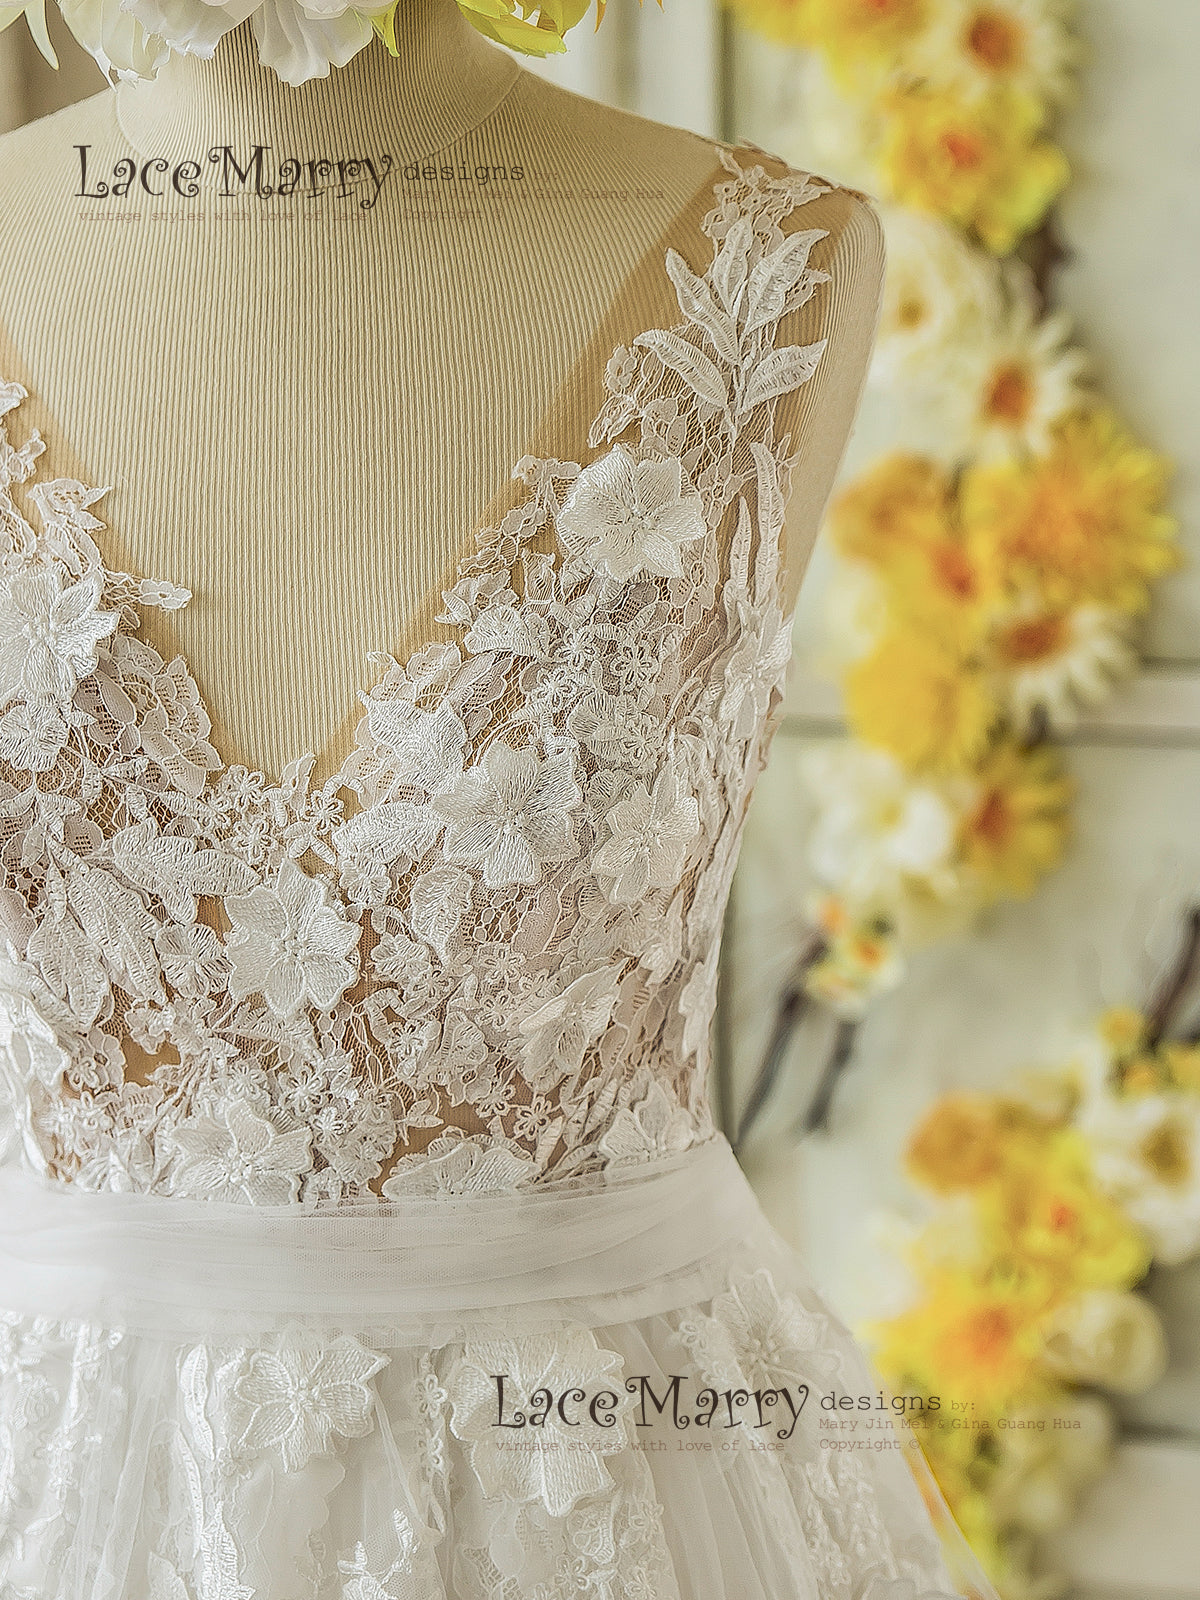 3D Lace Boho Wedding Dress with Sheer Nude Top in V-Cut shape and ...